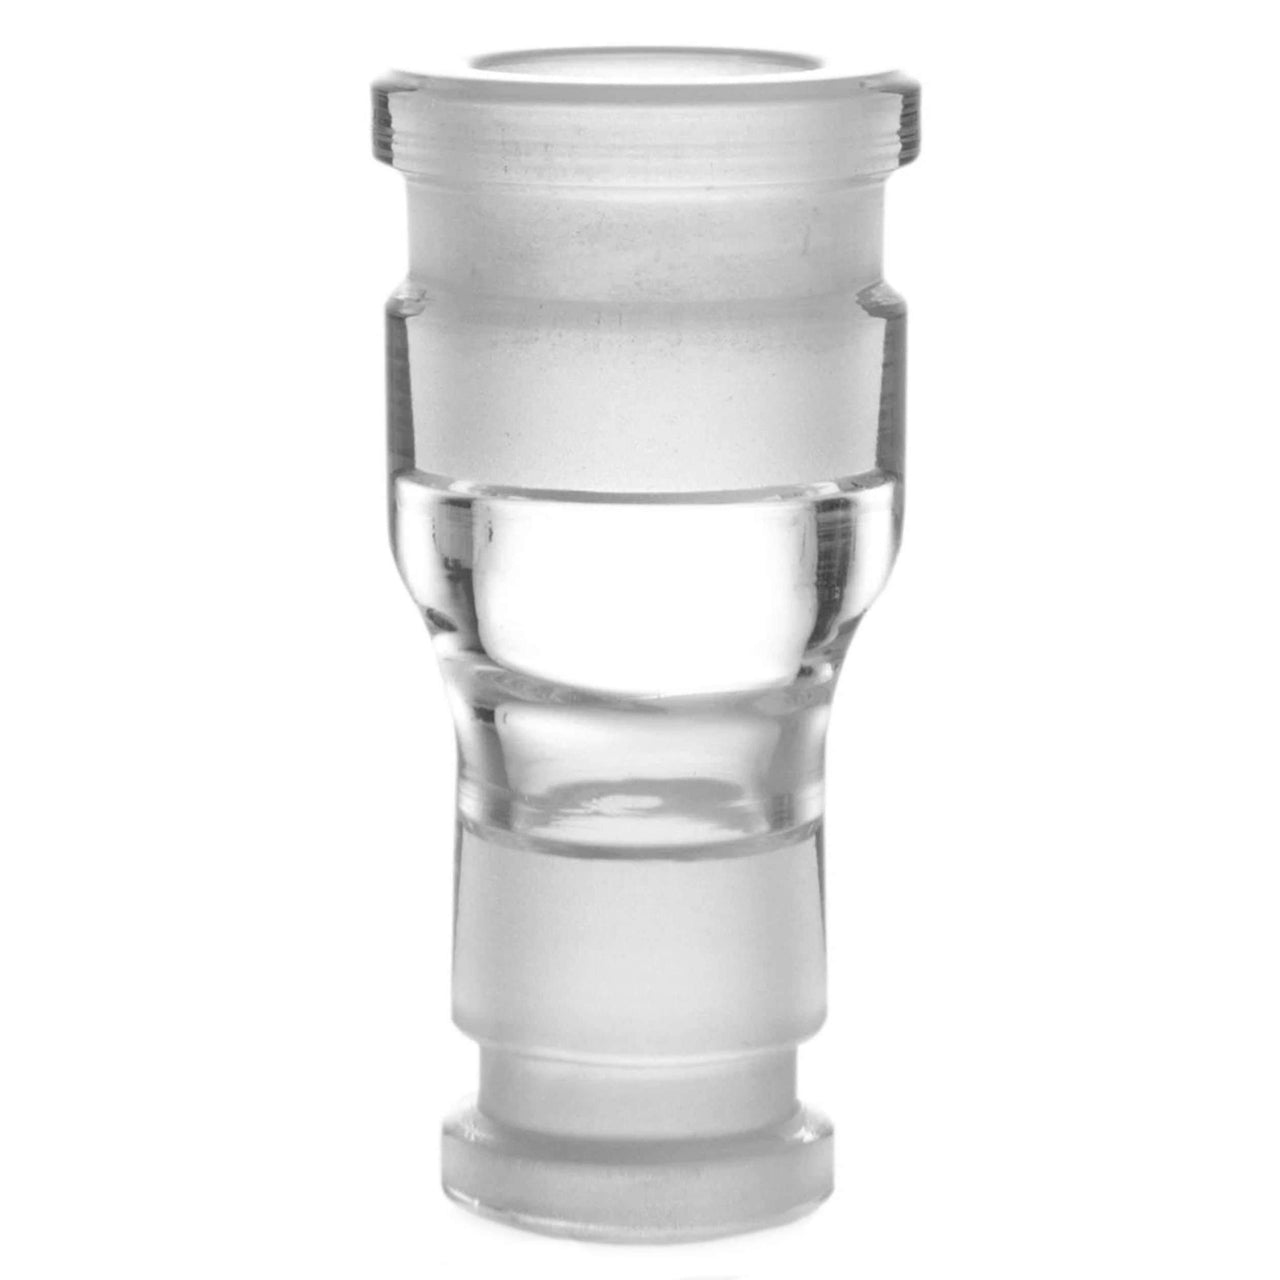 Grav Labs 14mm Female to 18mm Female Adapter | The710Source.com